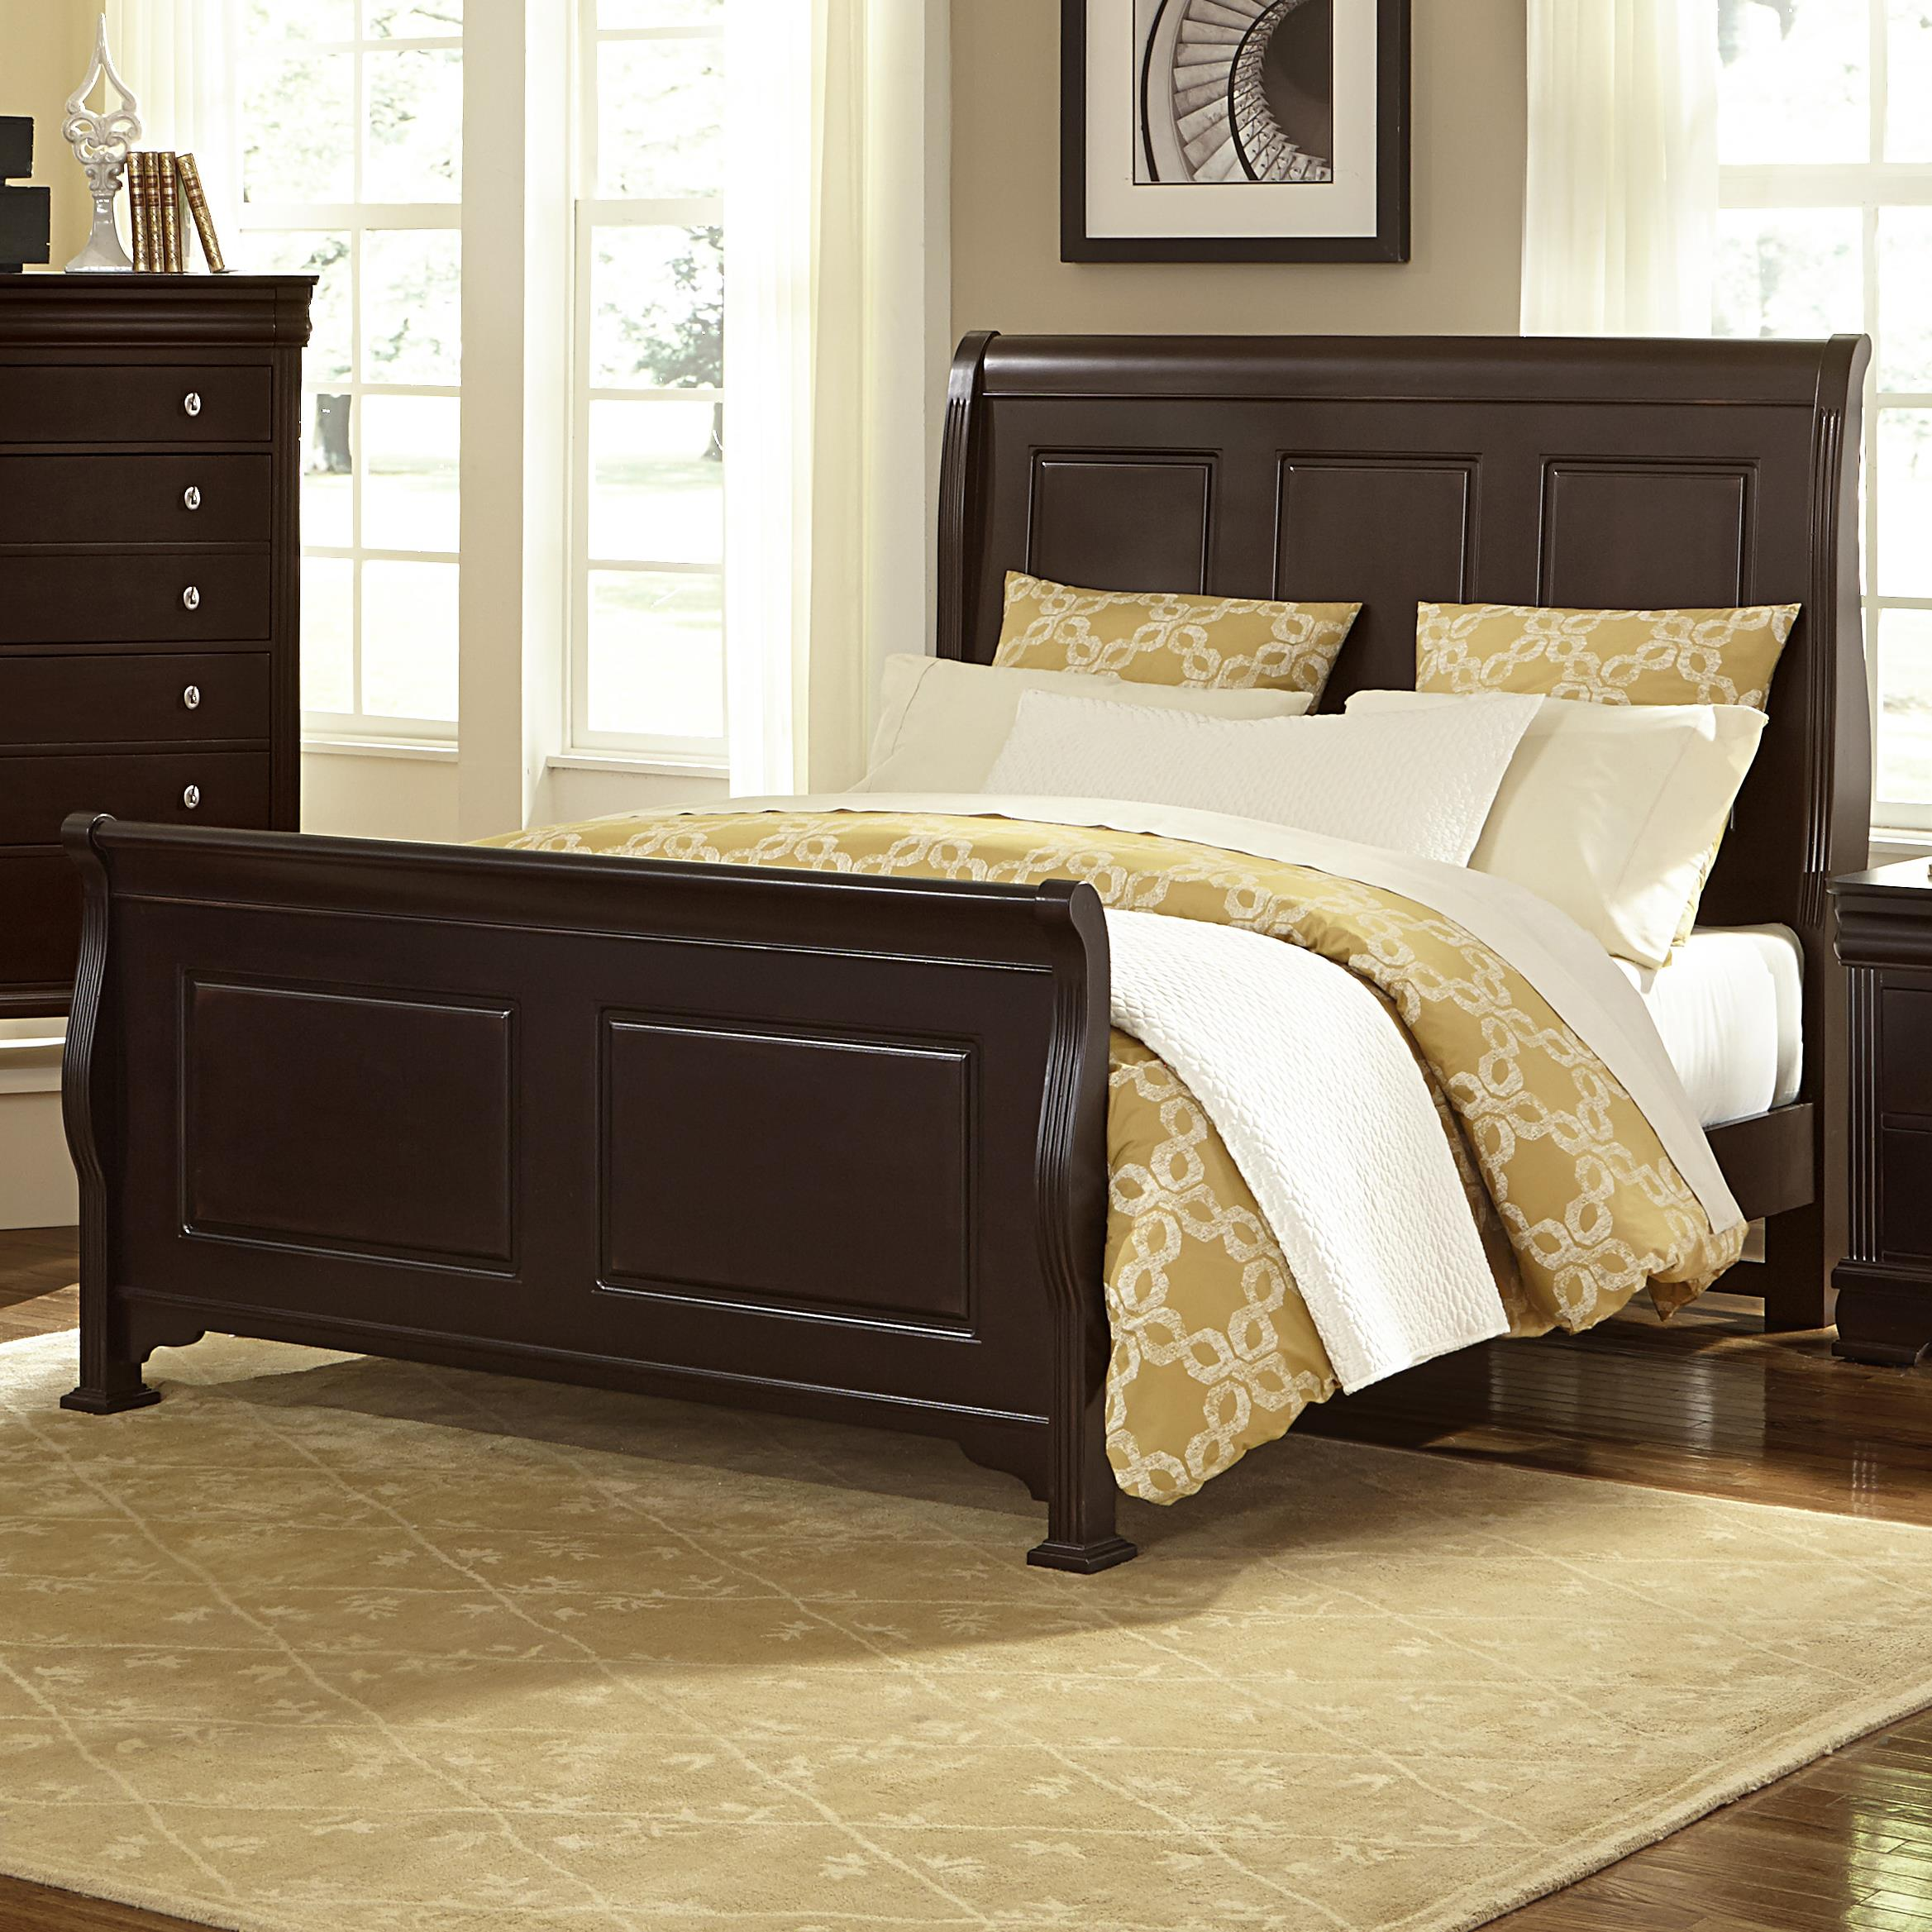 Vaughan Bassett French Market King Sleigh Bed - Item Number: 380-661+166+922+MS1